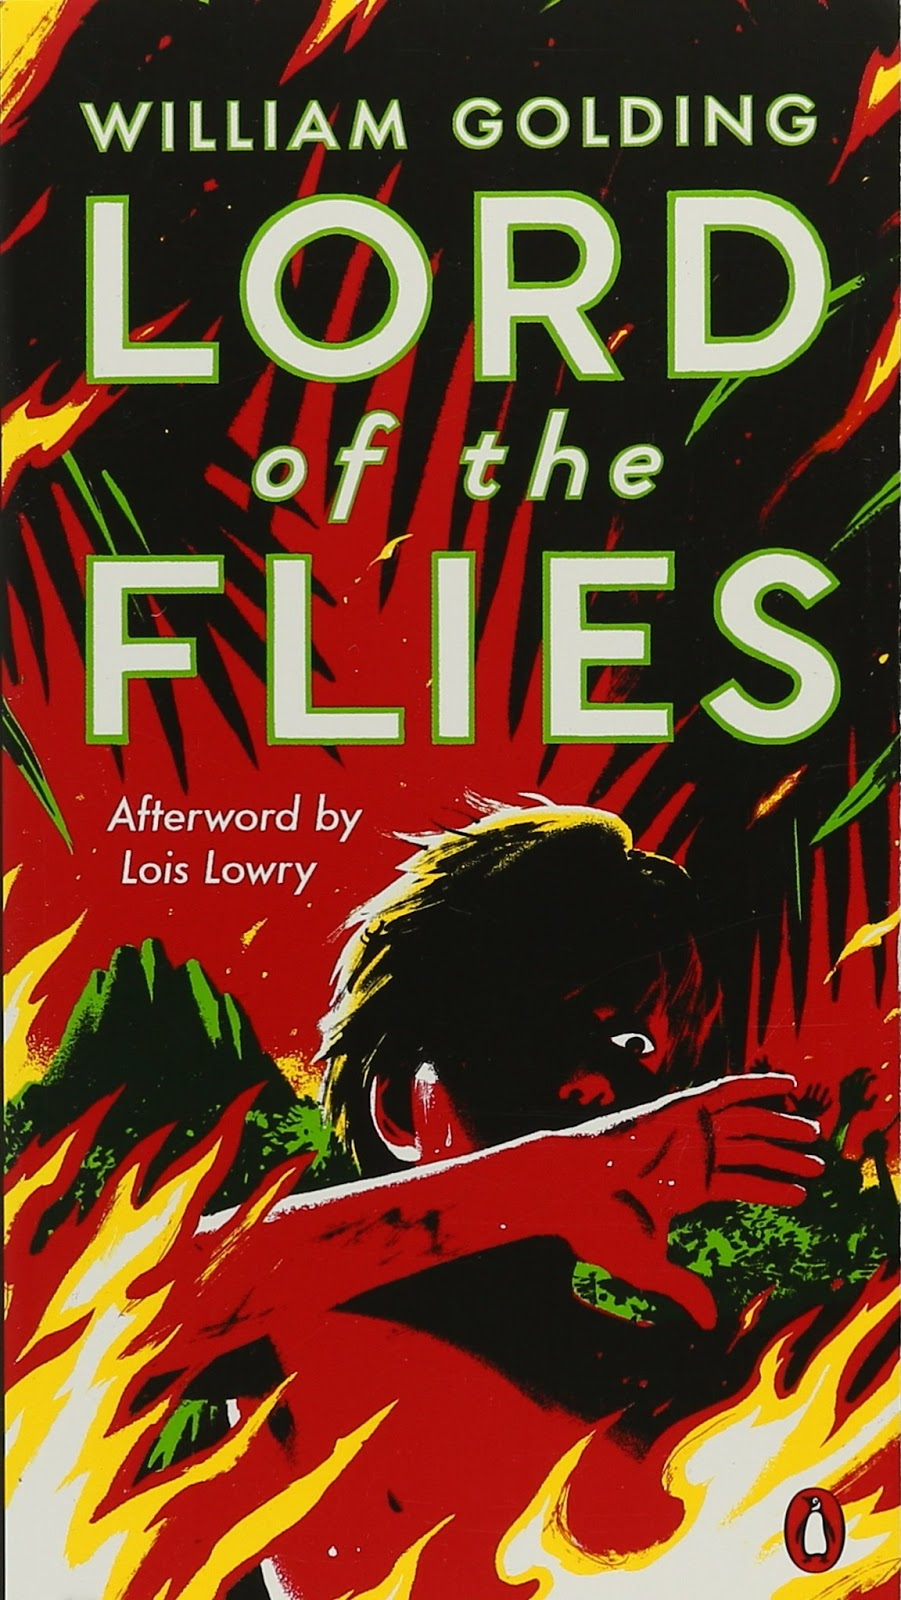 the element of the demons in william goldings the lord of the flies Save beelzebub lord of flies to get e-mail alerts and updates on your ebay feed + beelzebub : lord of the flies - framed 19th century illustration ( demons ) $799.